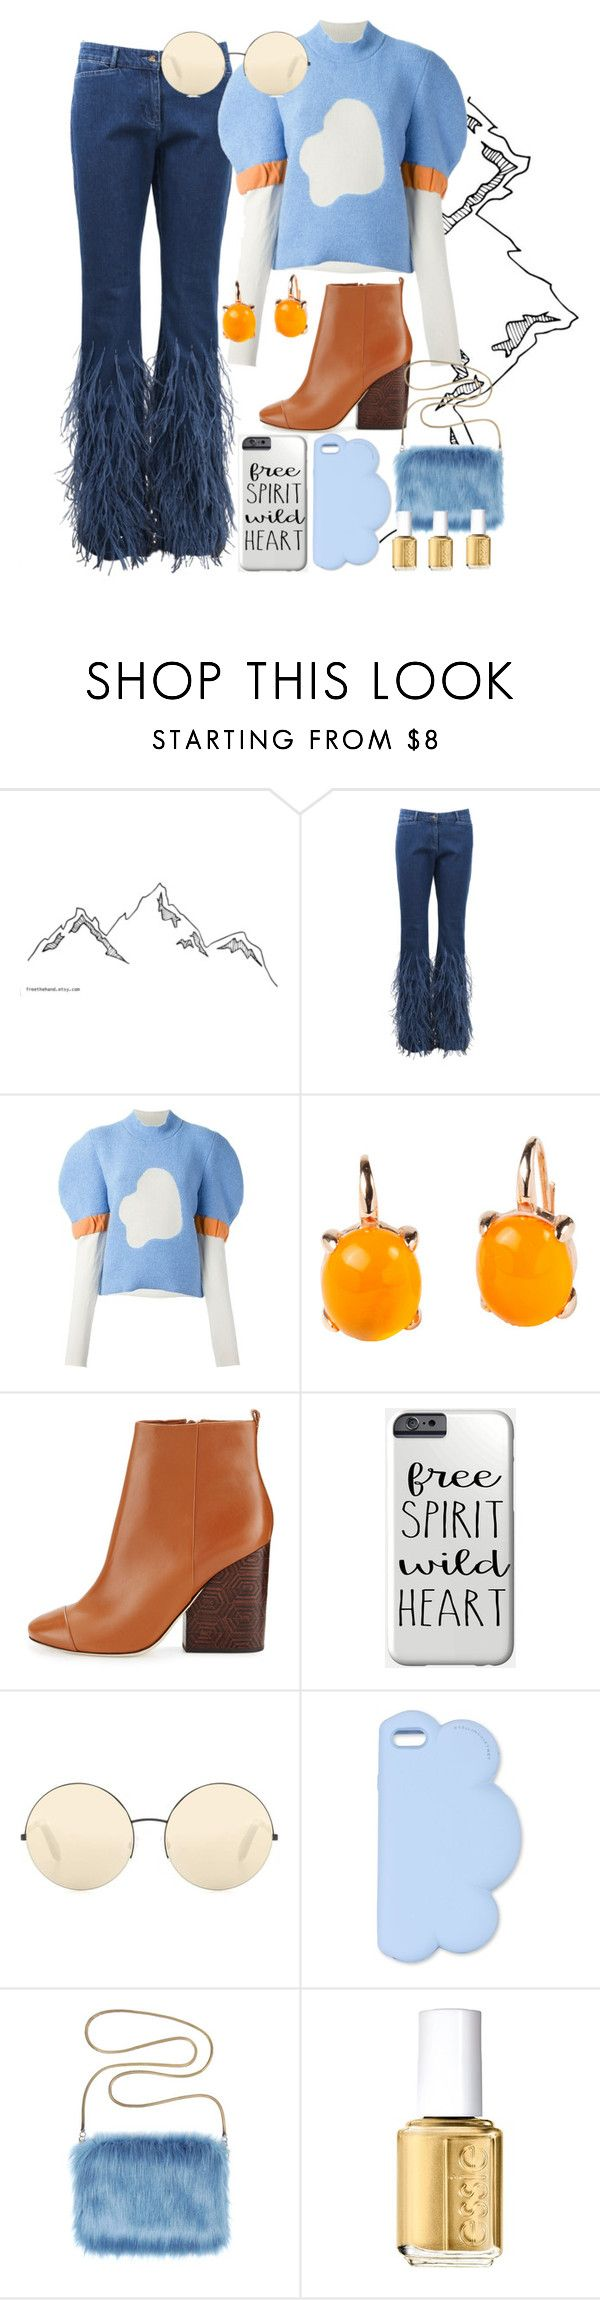 """""""Moutainians."""" by emiam ❤ liked on Polyvore featuring Michael Kors, J.W. Anderson, Rina Limor, Tory Burch, Victoria Beckham, STELLA McCARTNEY and Essie"""